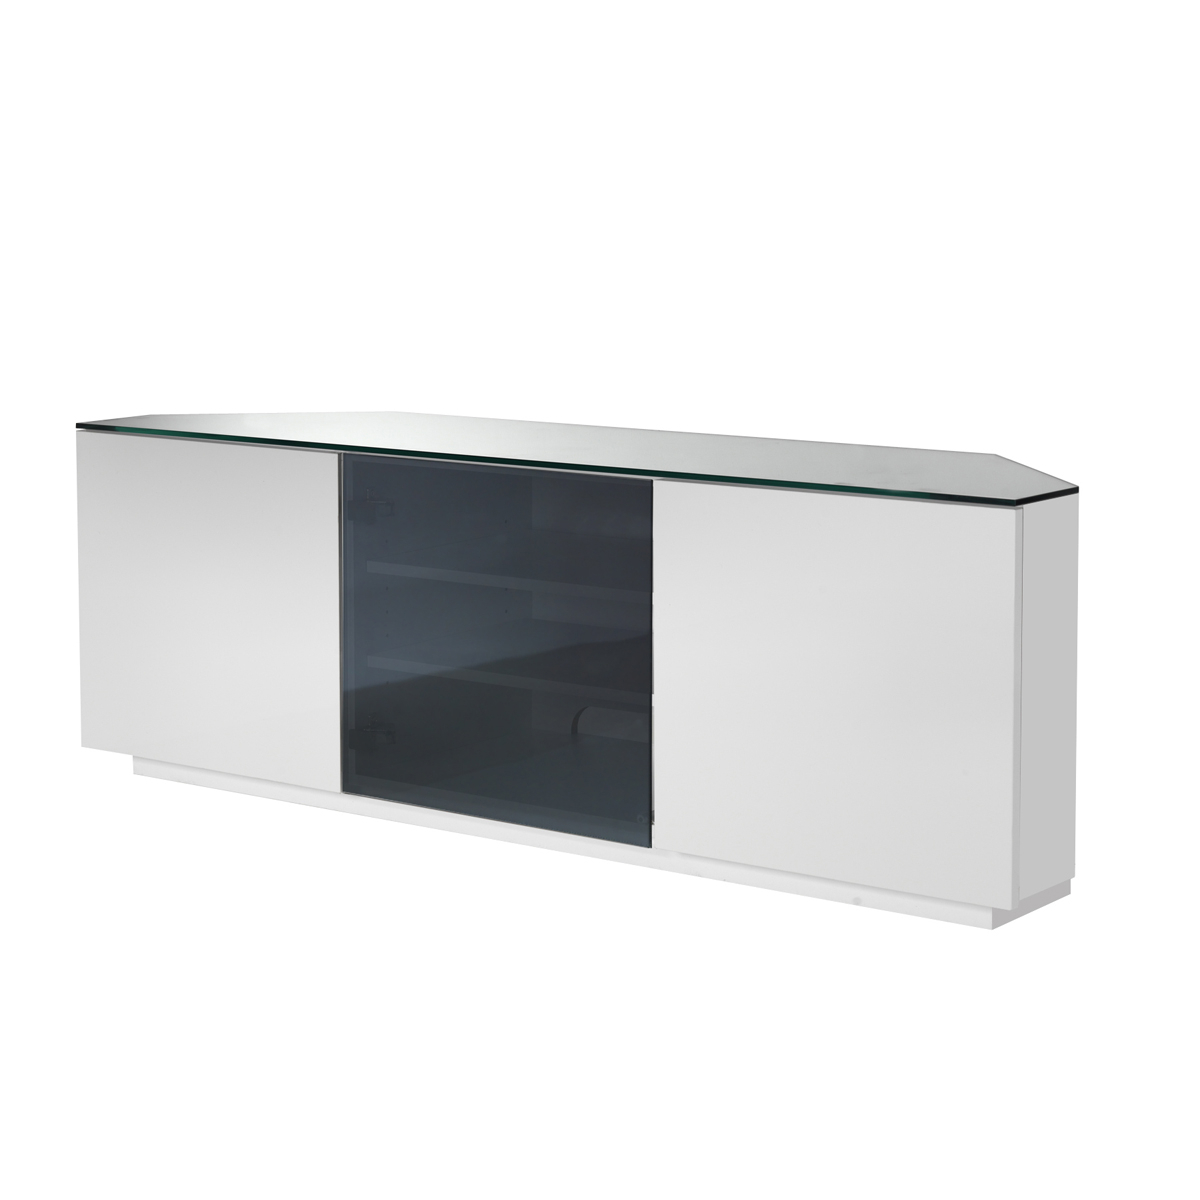 Famous Ukcf Milan White Gloss & Black Glass Corner Tv Stand 150Cm In Corner Tv Unit White Gloss (View 4 of 20)